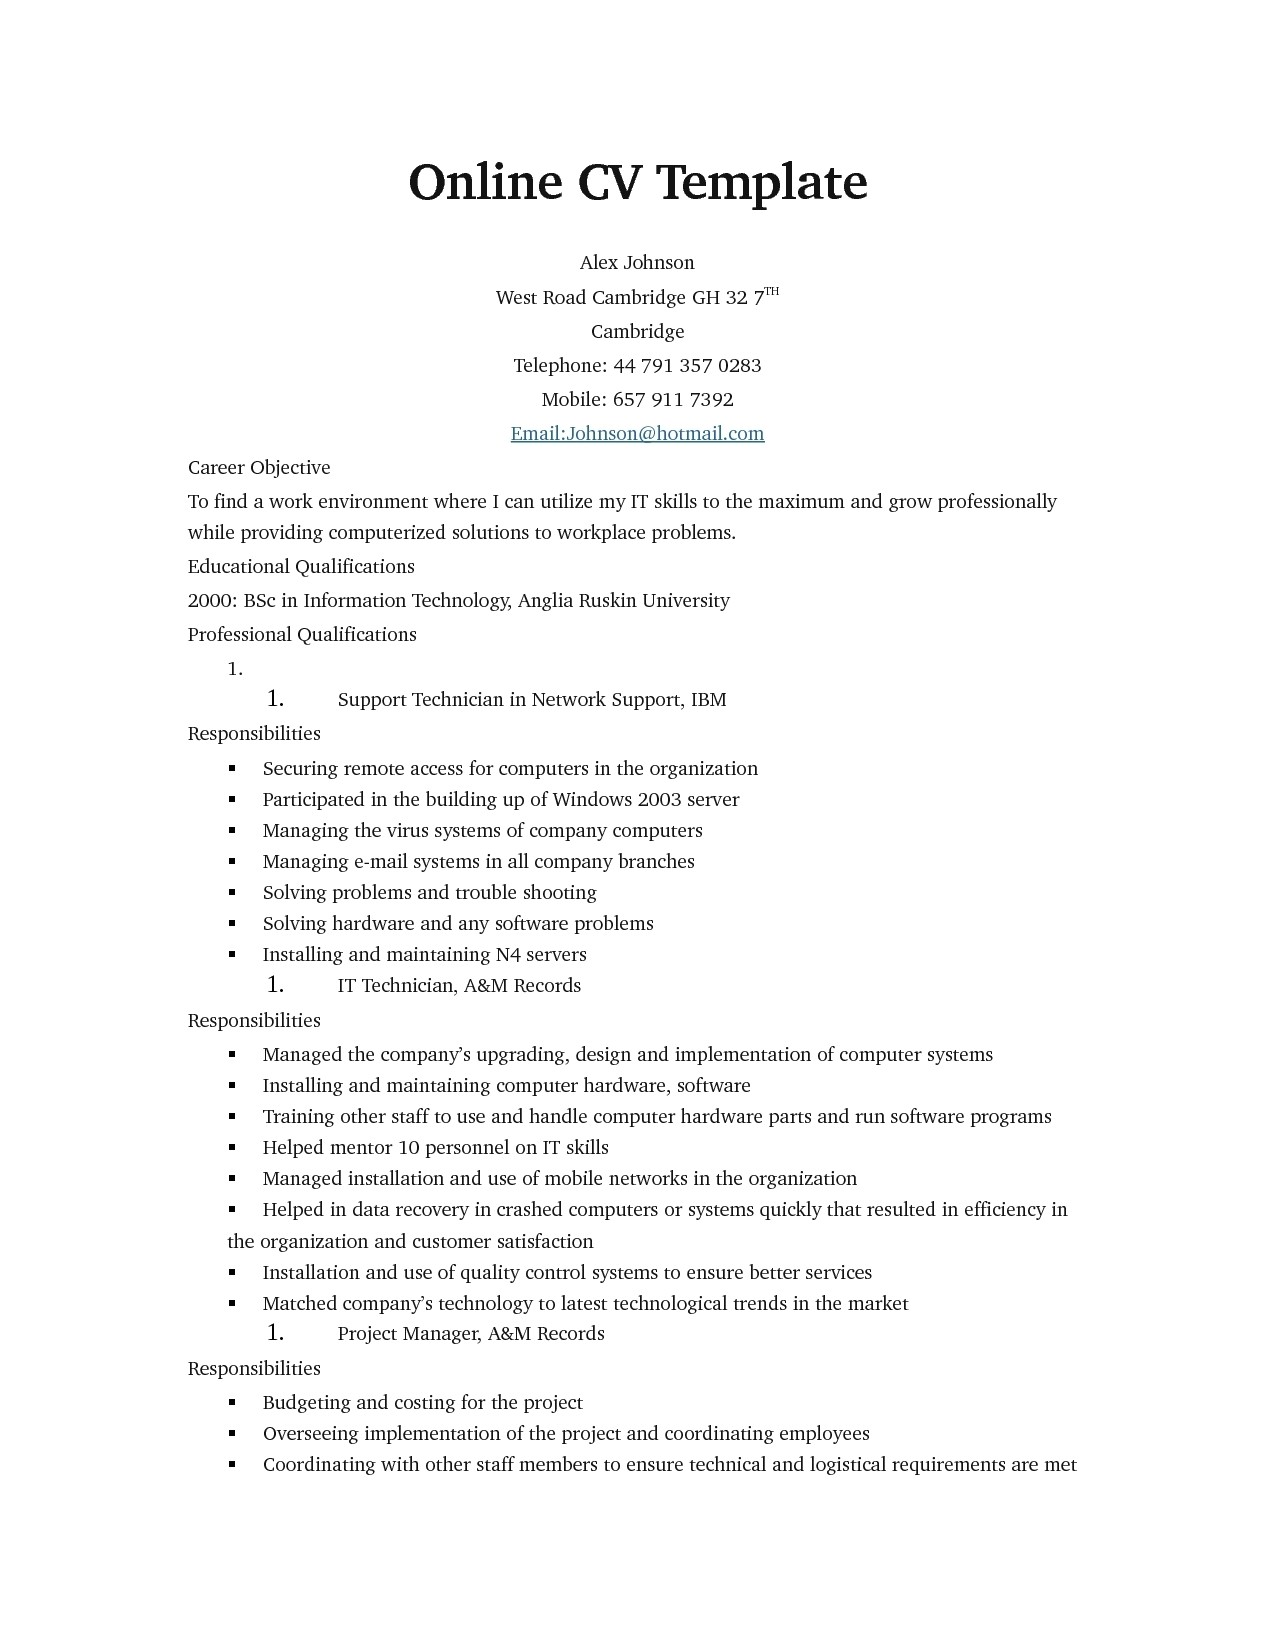 Free Sample Resume Templates Online Resume Templates Health Symptoms and Cure Com